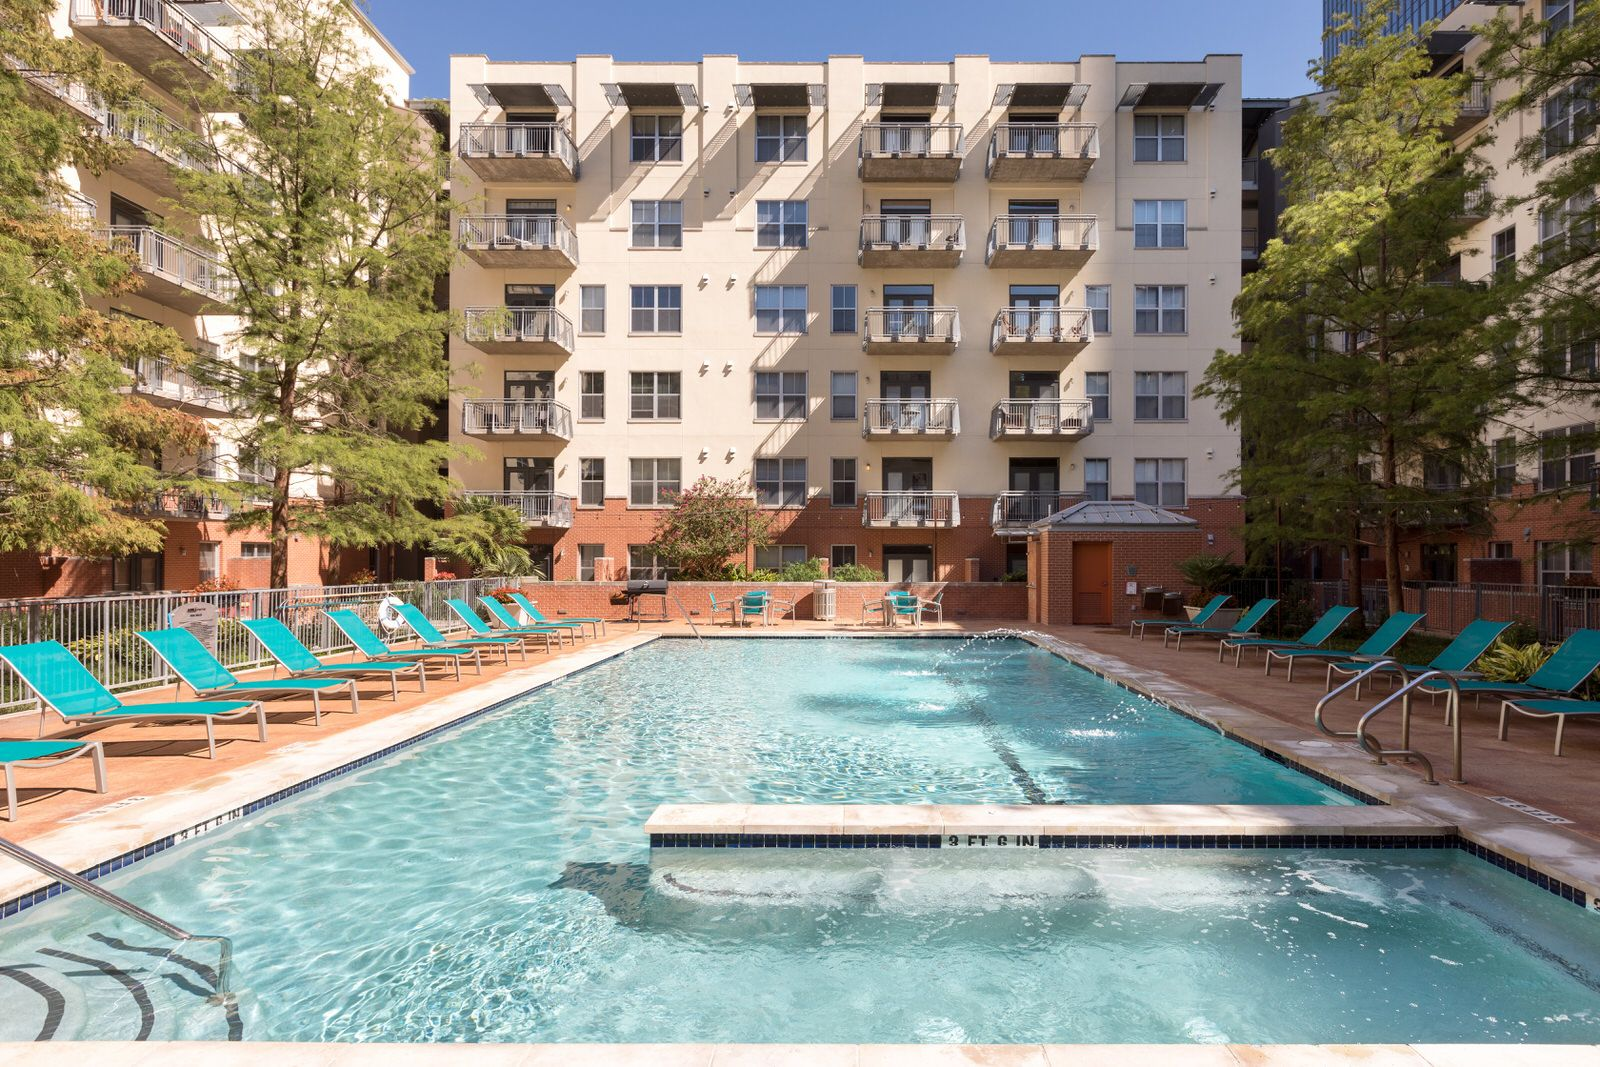 Live With A Resort Style Pool In Your Backyard While In The Heart Of Downtown Austin Downtown Austin Apartments Downtown Austin Resort Style Pool